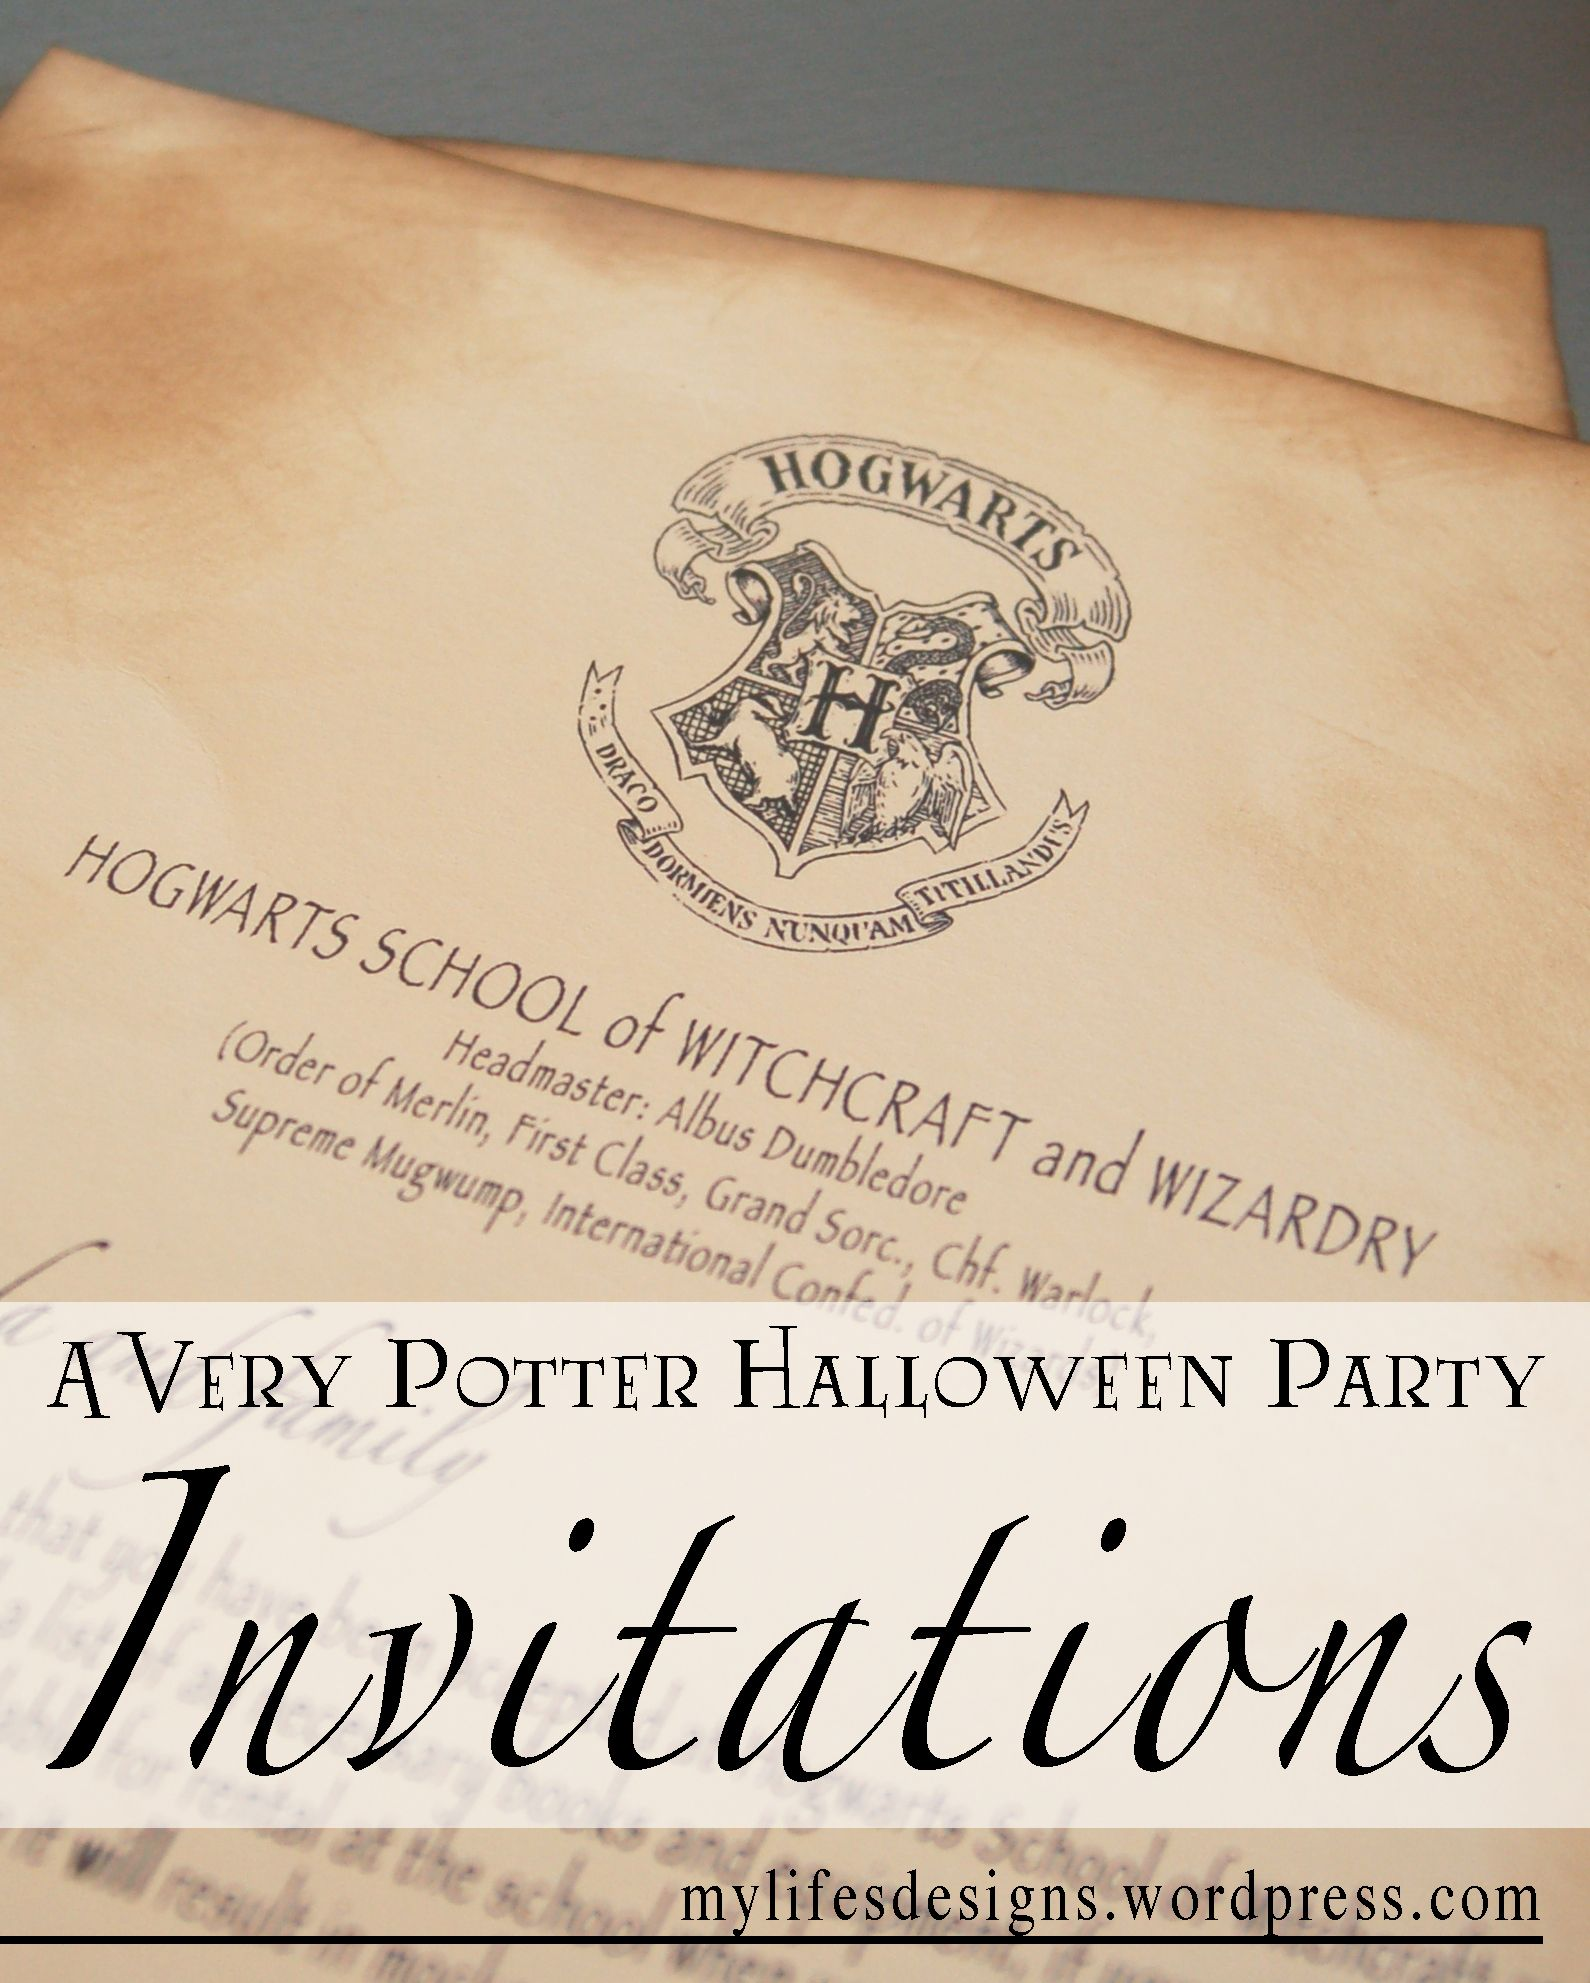 Free Downloads To Create Your Own Harry Potter Party Invitations Or Acceptance Letter